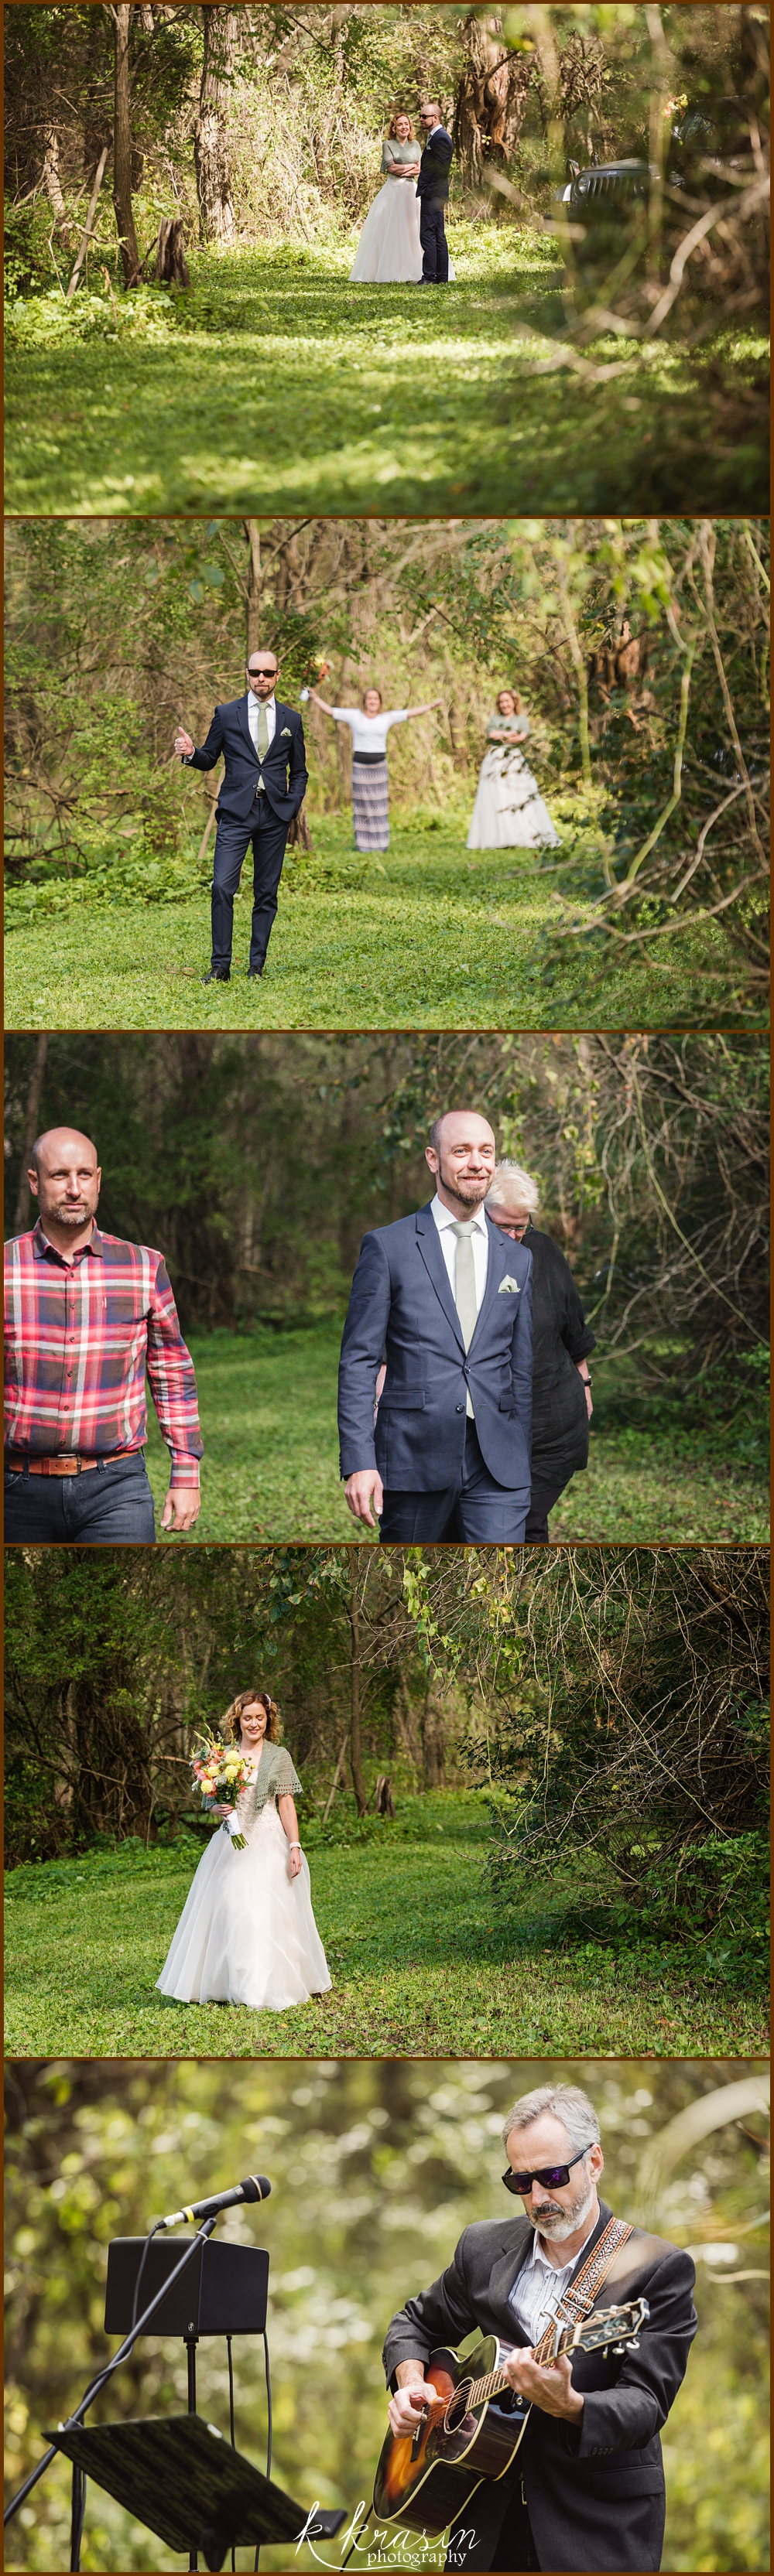 Collage of photos of beginning of wedding ceremony